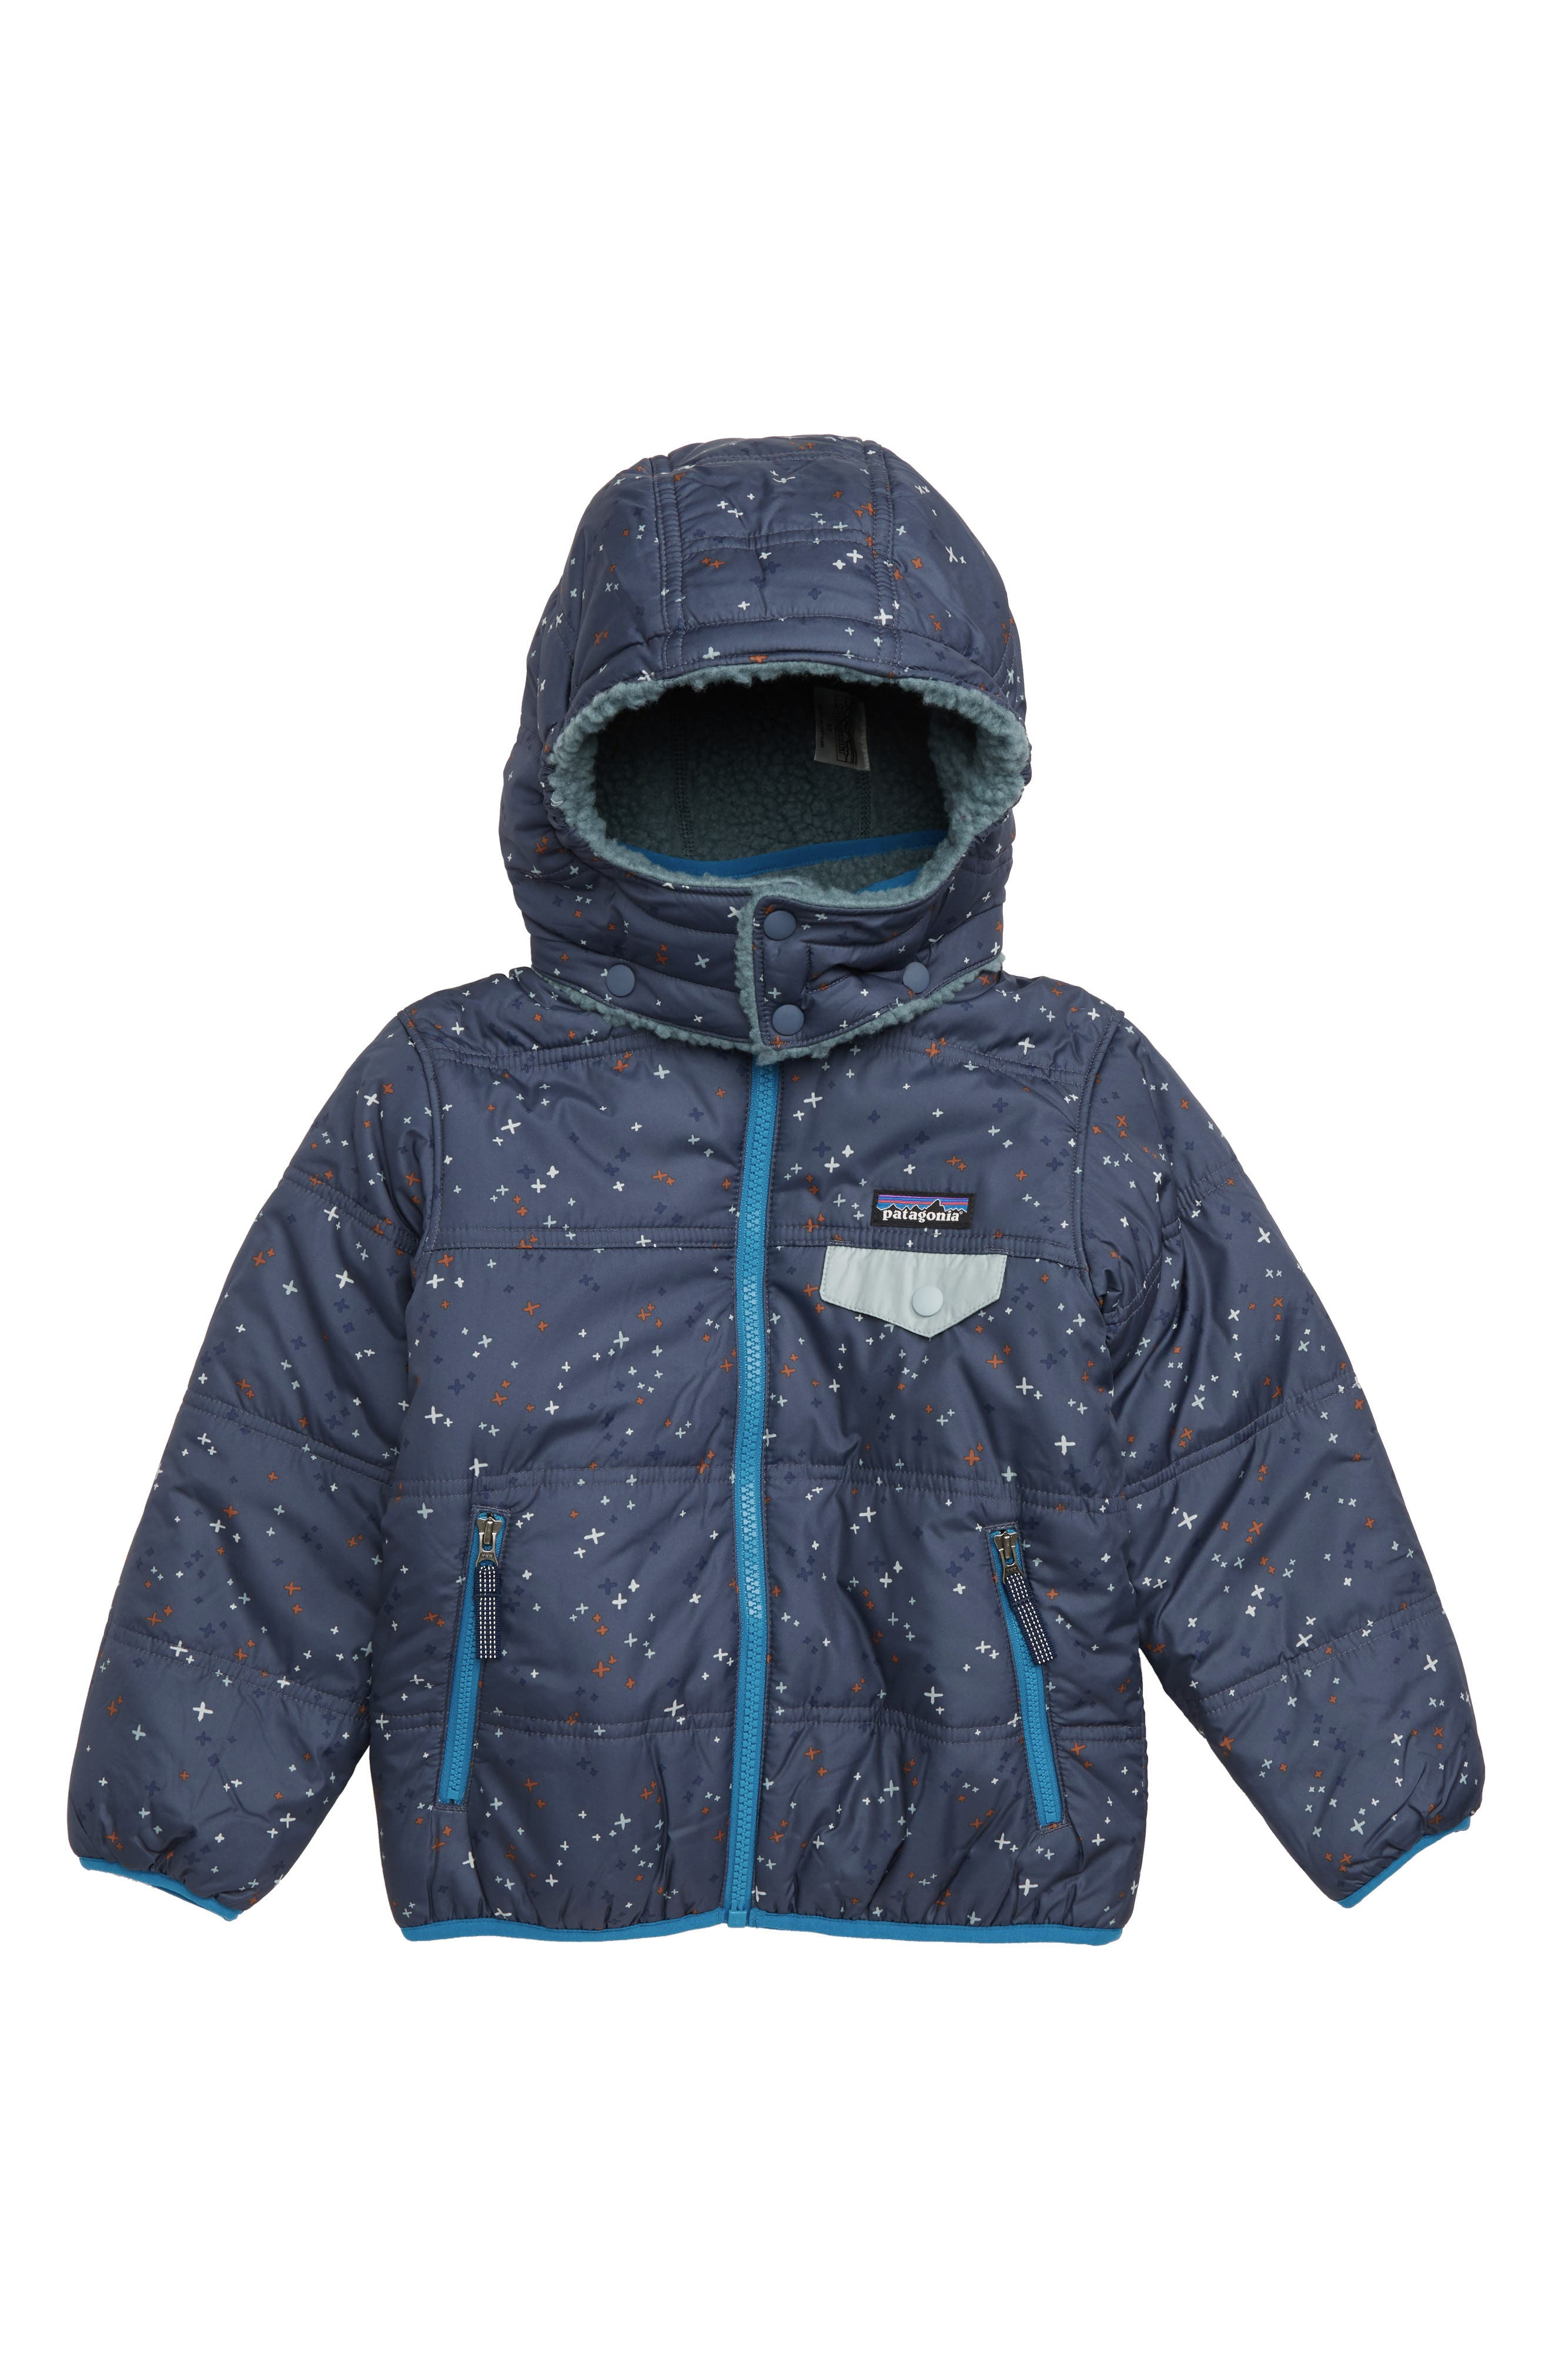 'Tribbles' Reversible Water Resistant Snow Jacket,                         Main,                         color, CSCL CROSS STITCH NAVY